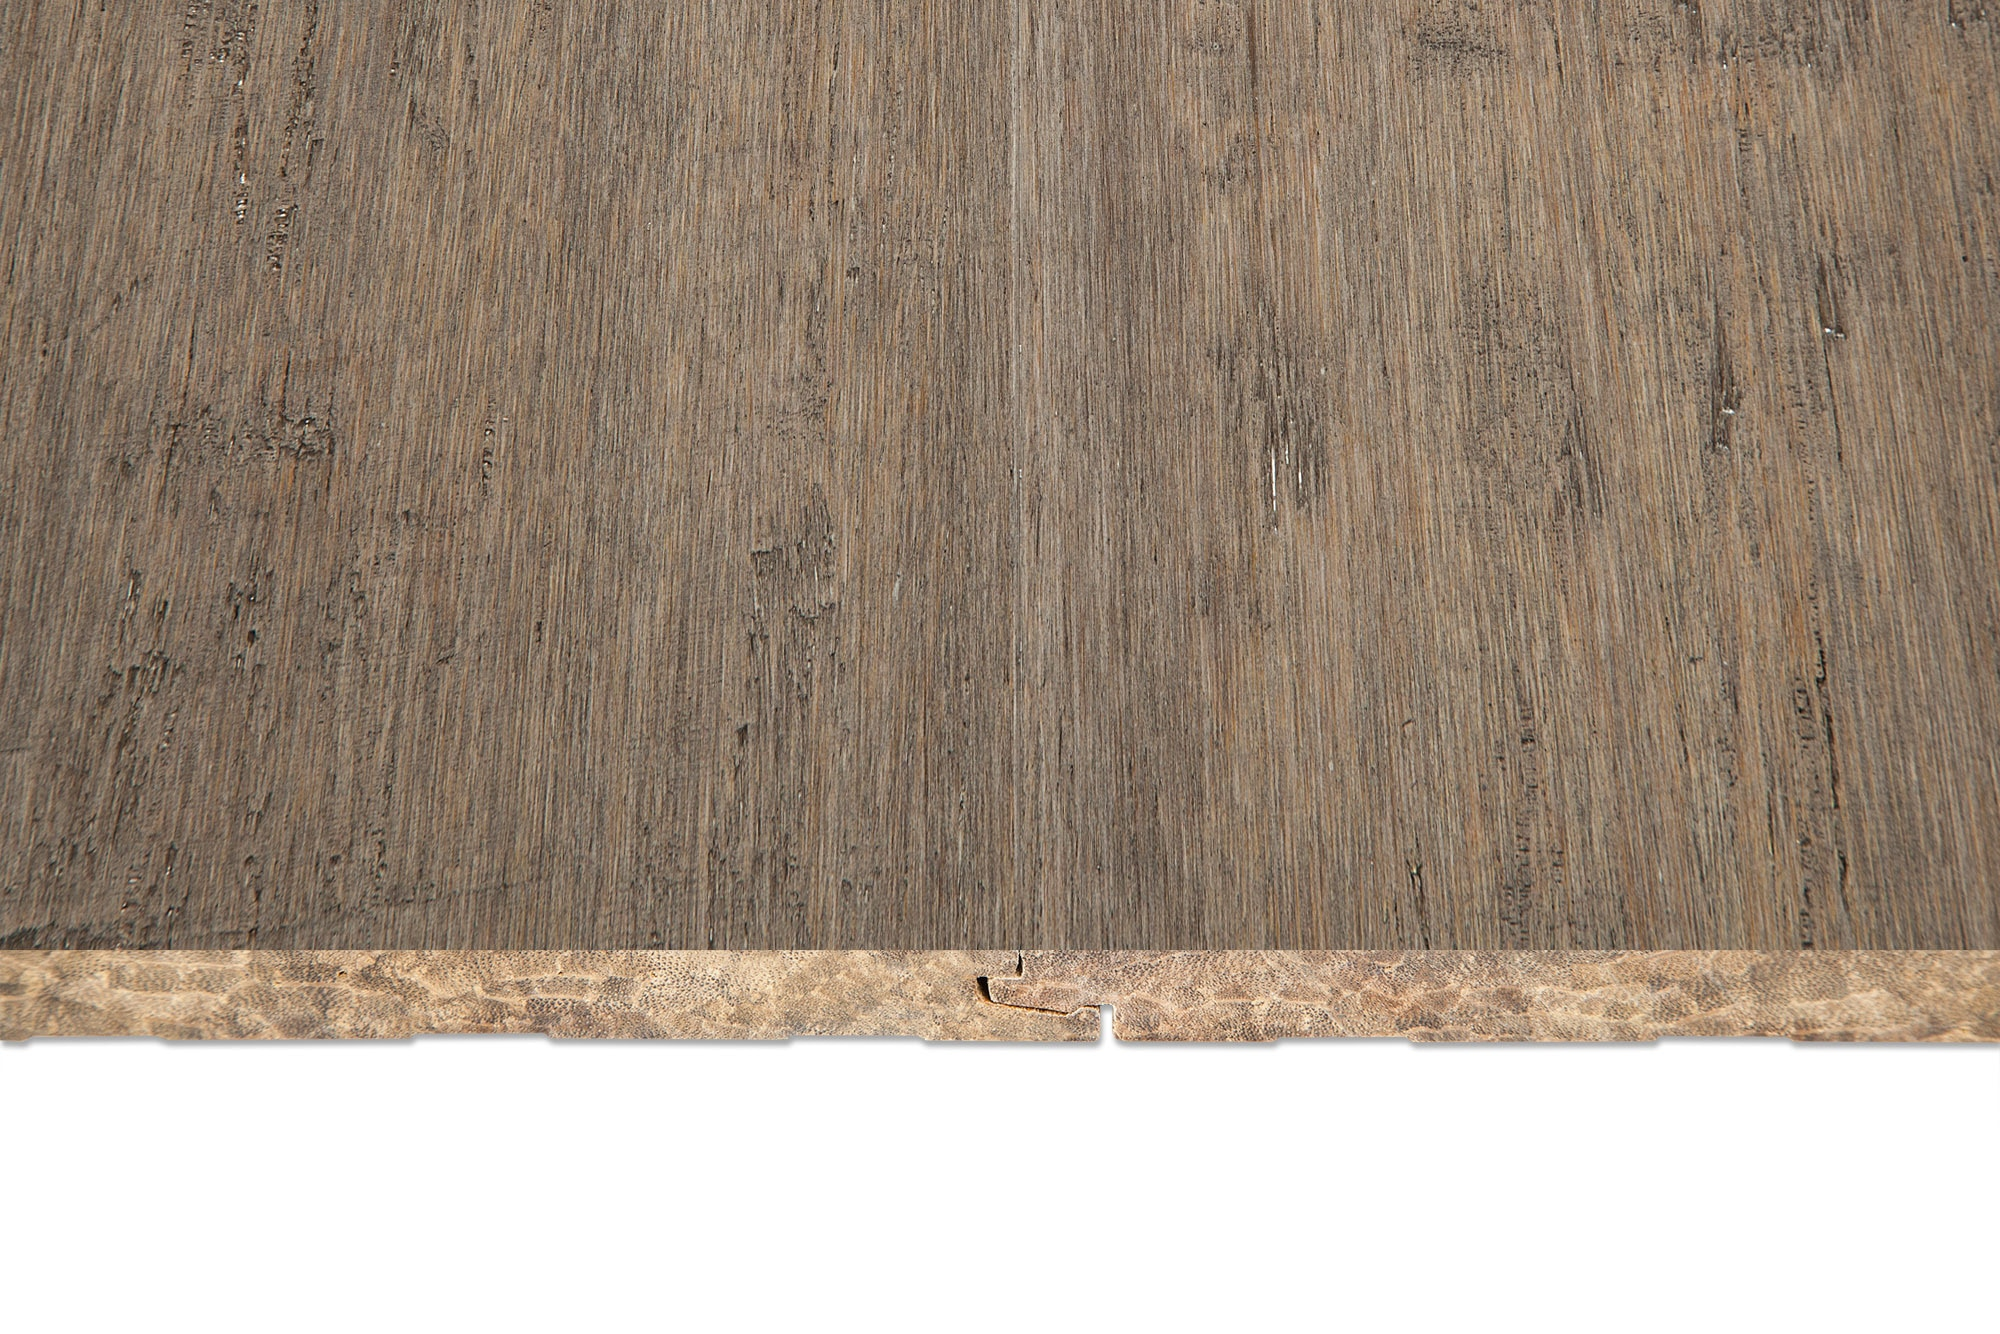 Yanchi Wide Strand Woven Bamboo Flooring Natural Nantucke